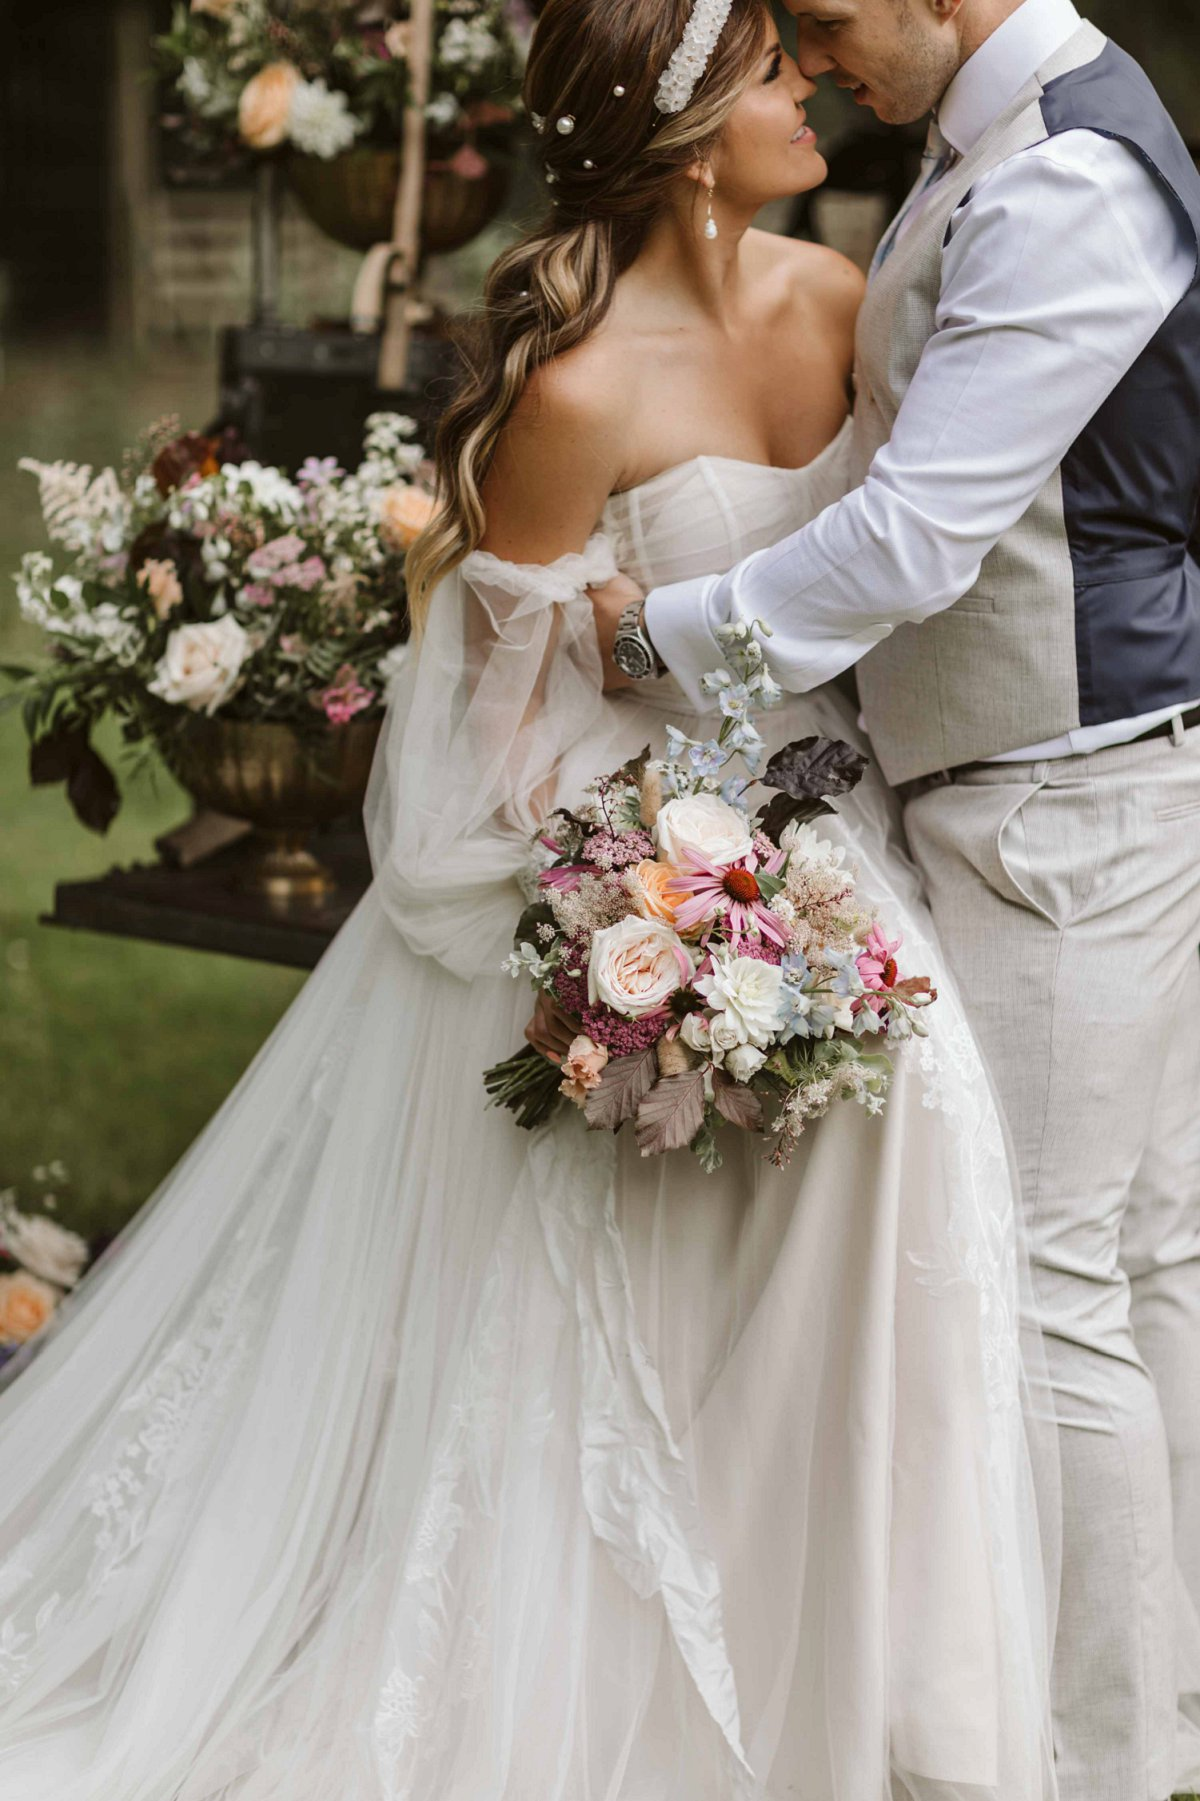 An Eclectic & Elegant Wedding Inspiration Shoot at Wold View Farm (c) Freya Raby Photography (21)